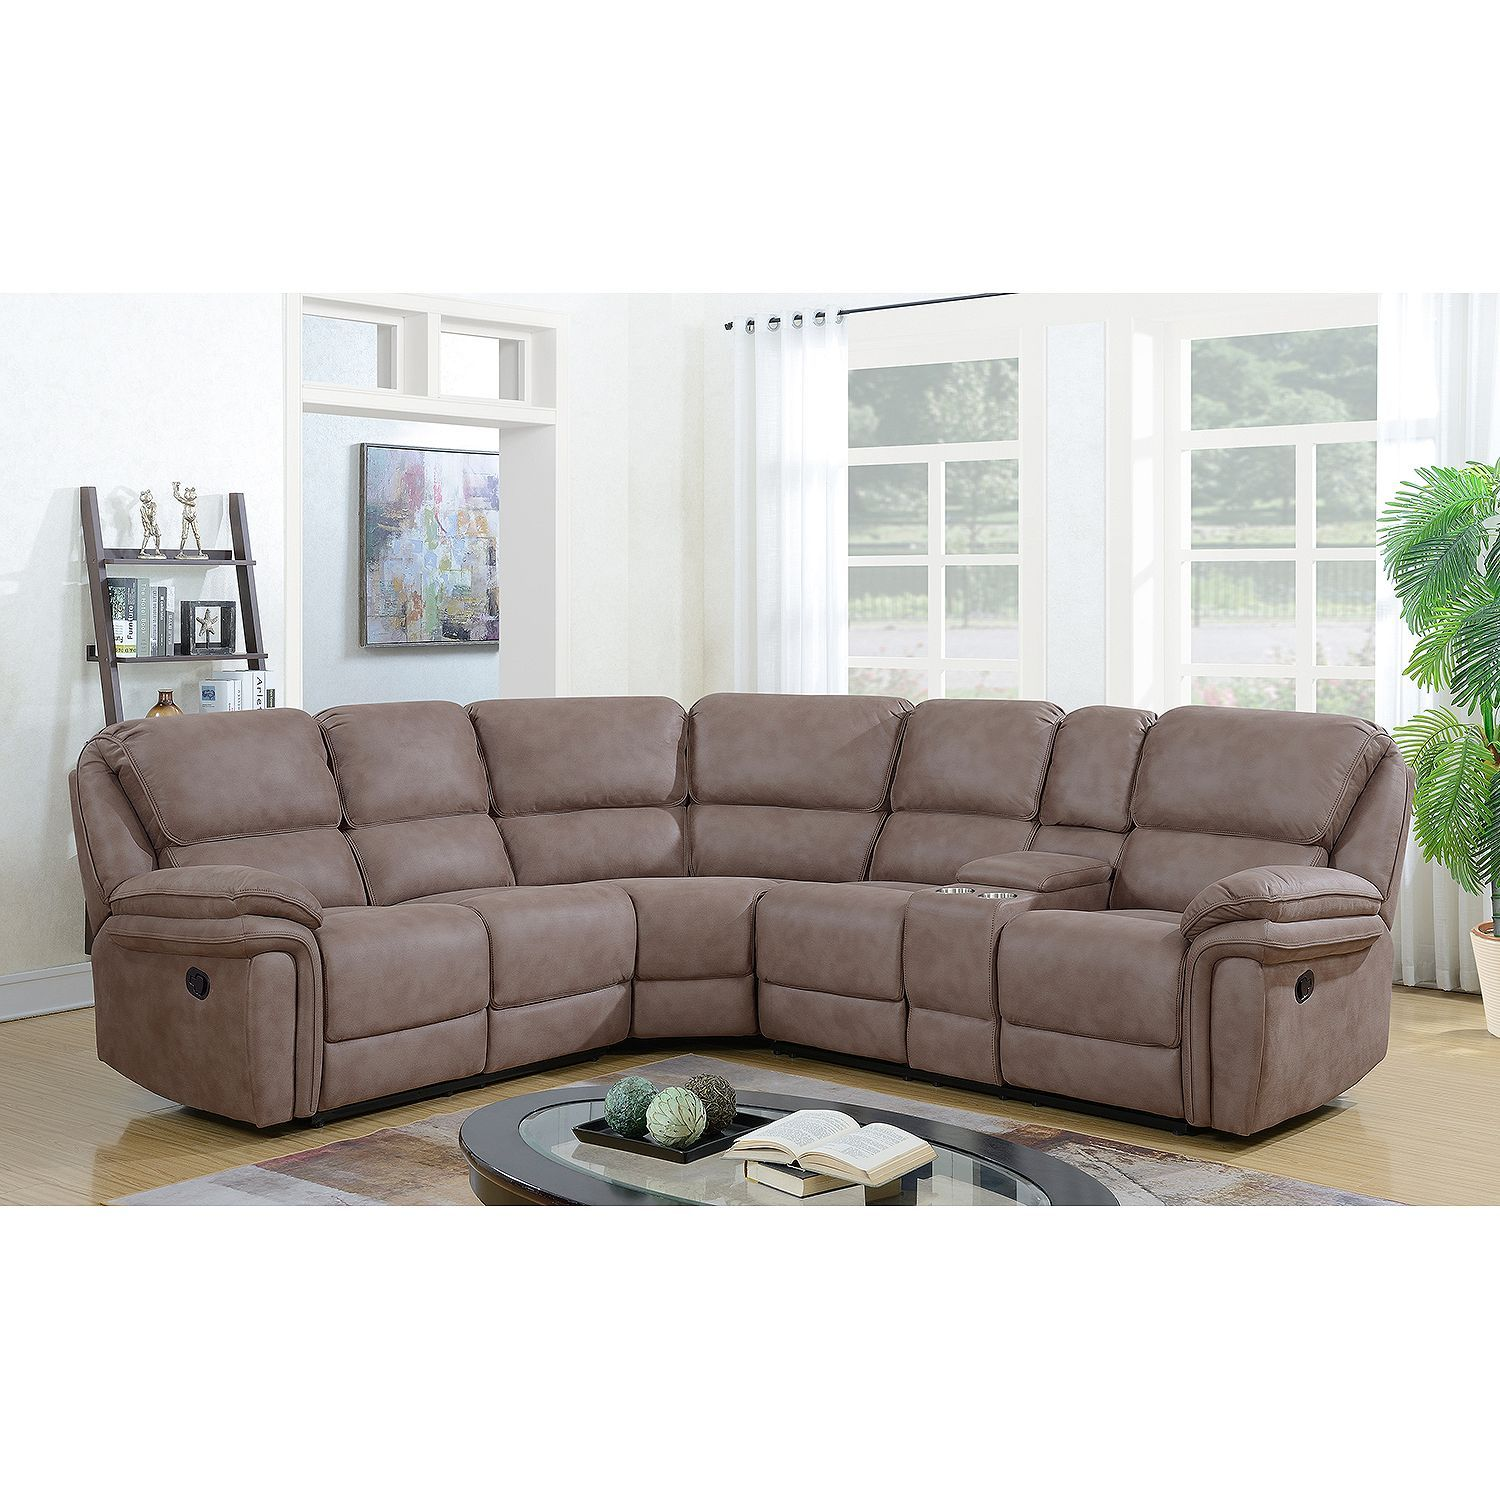 Langston Complete 3 Piece Reclining Sectional Sam S Club